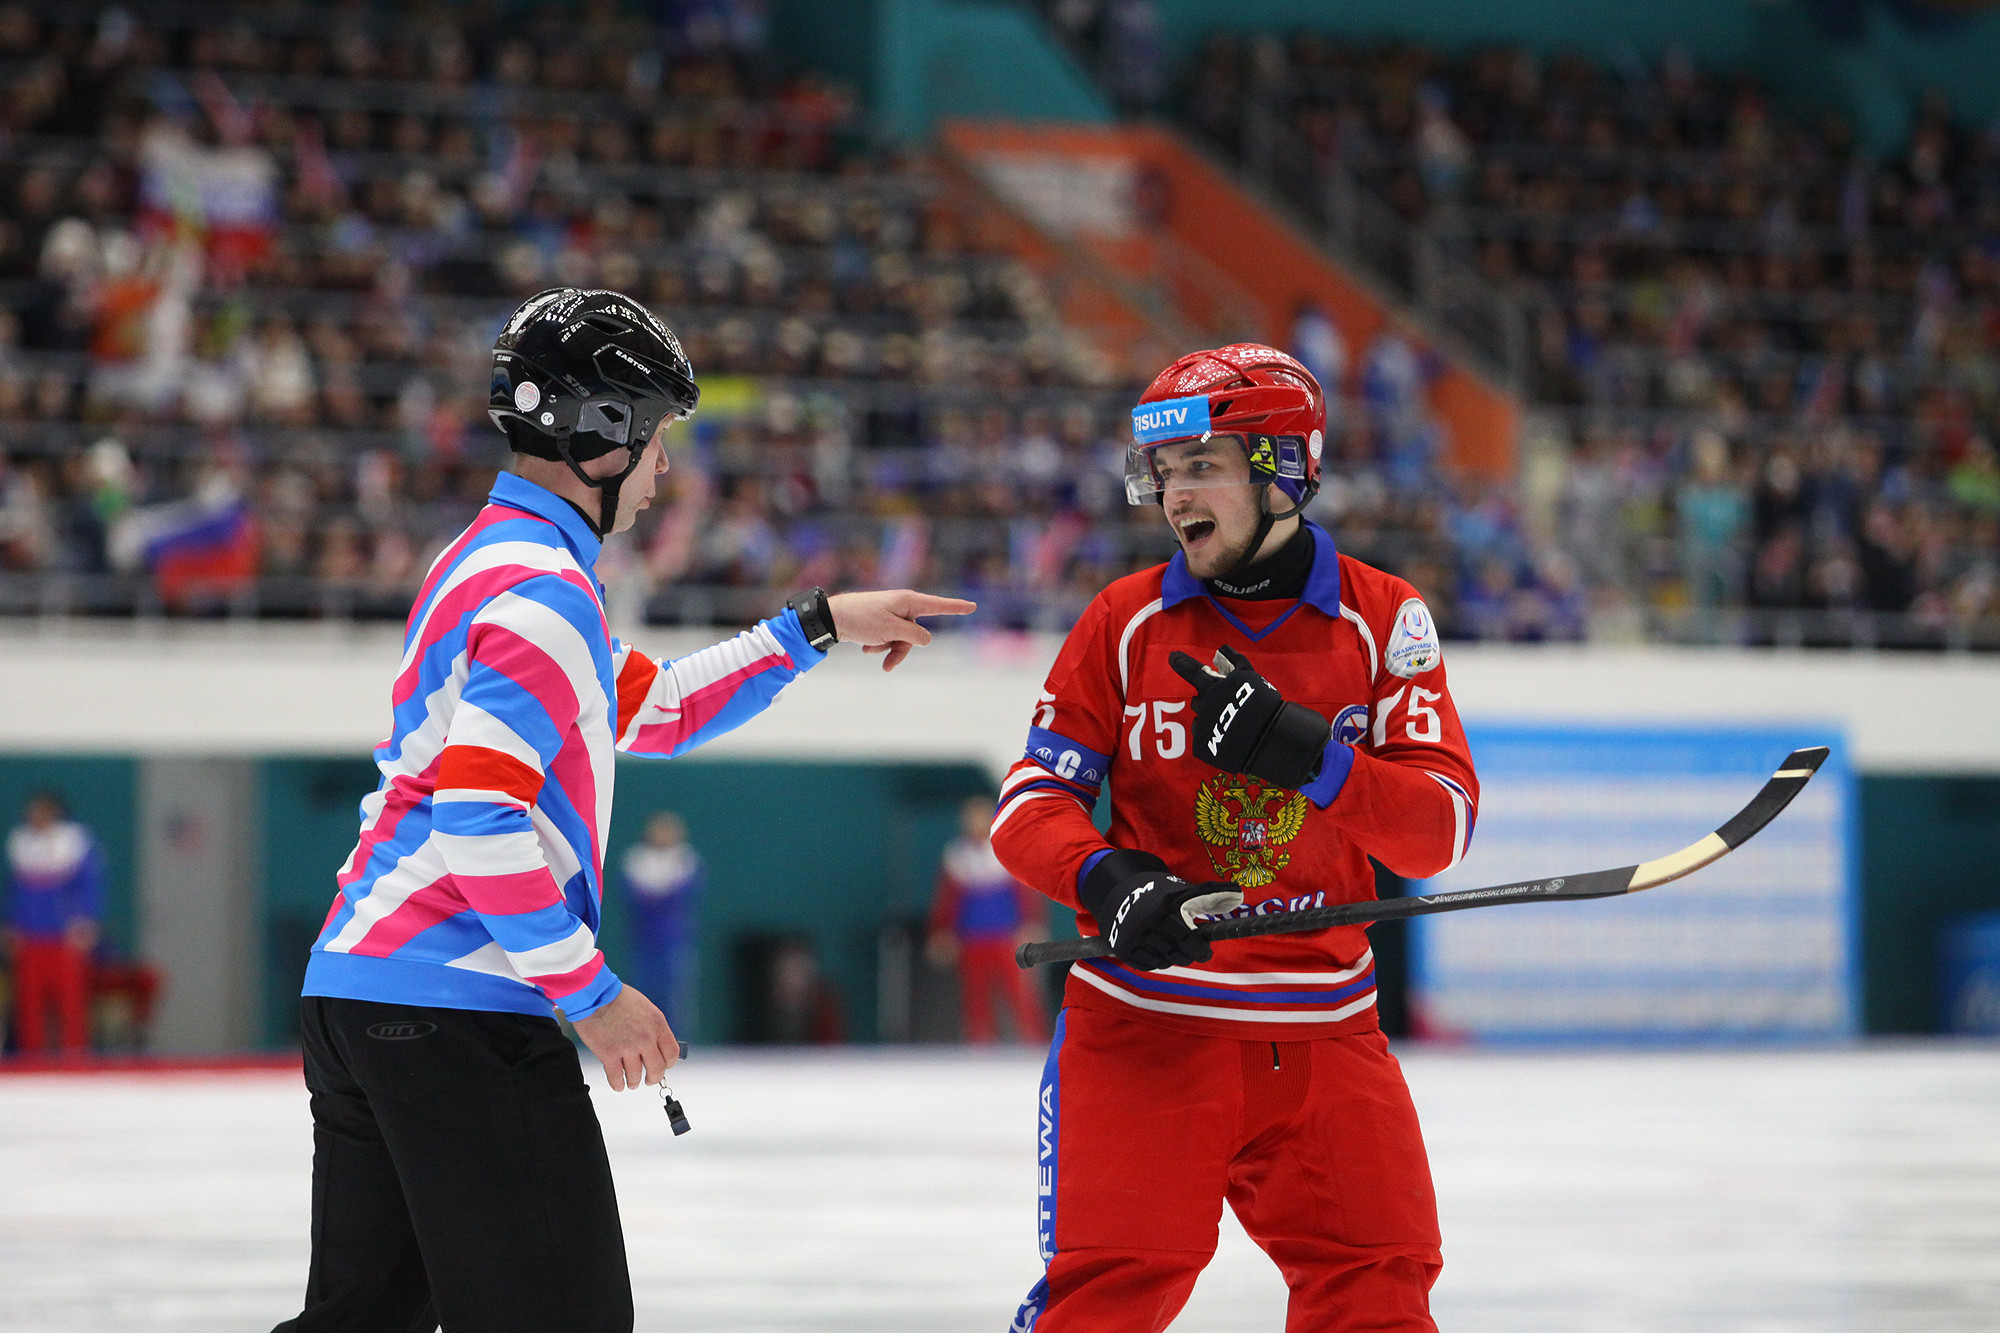 Russia had lost to Sweden in the women's final, with the men's team looking to ensure they were not subjected to the same fate ©Krasnoyarsk 2019